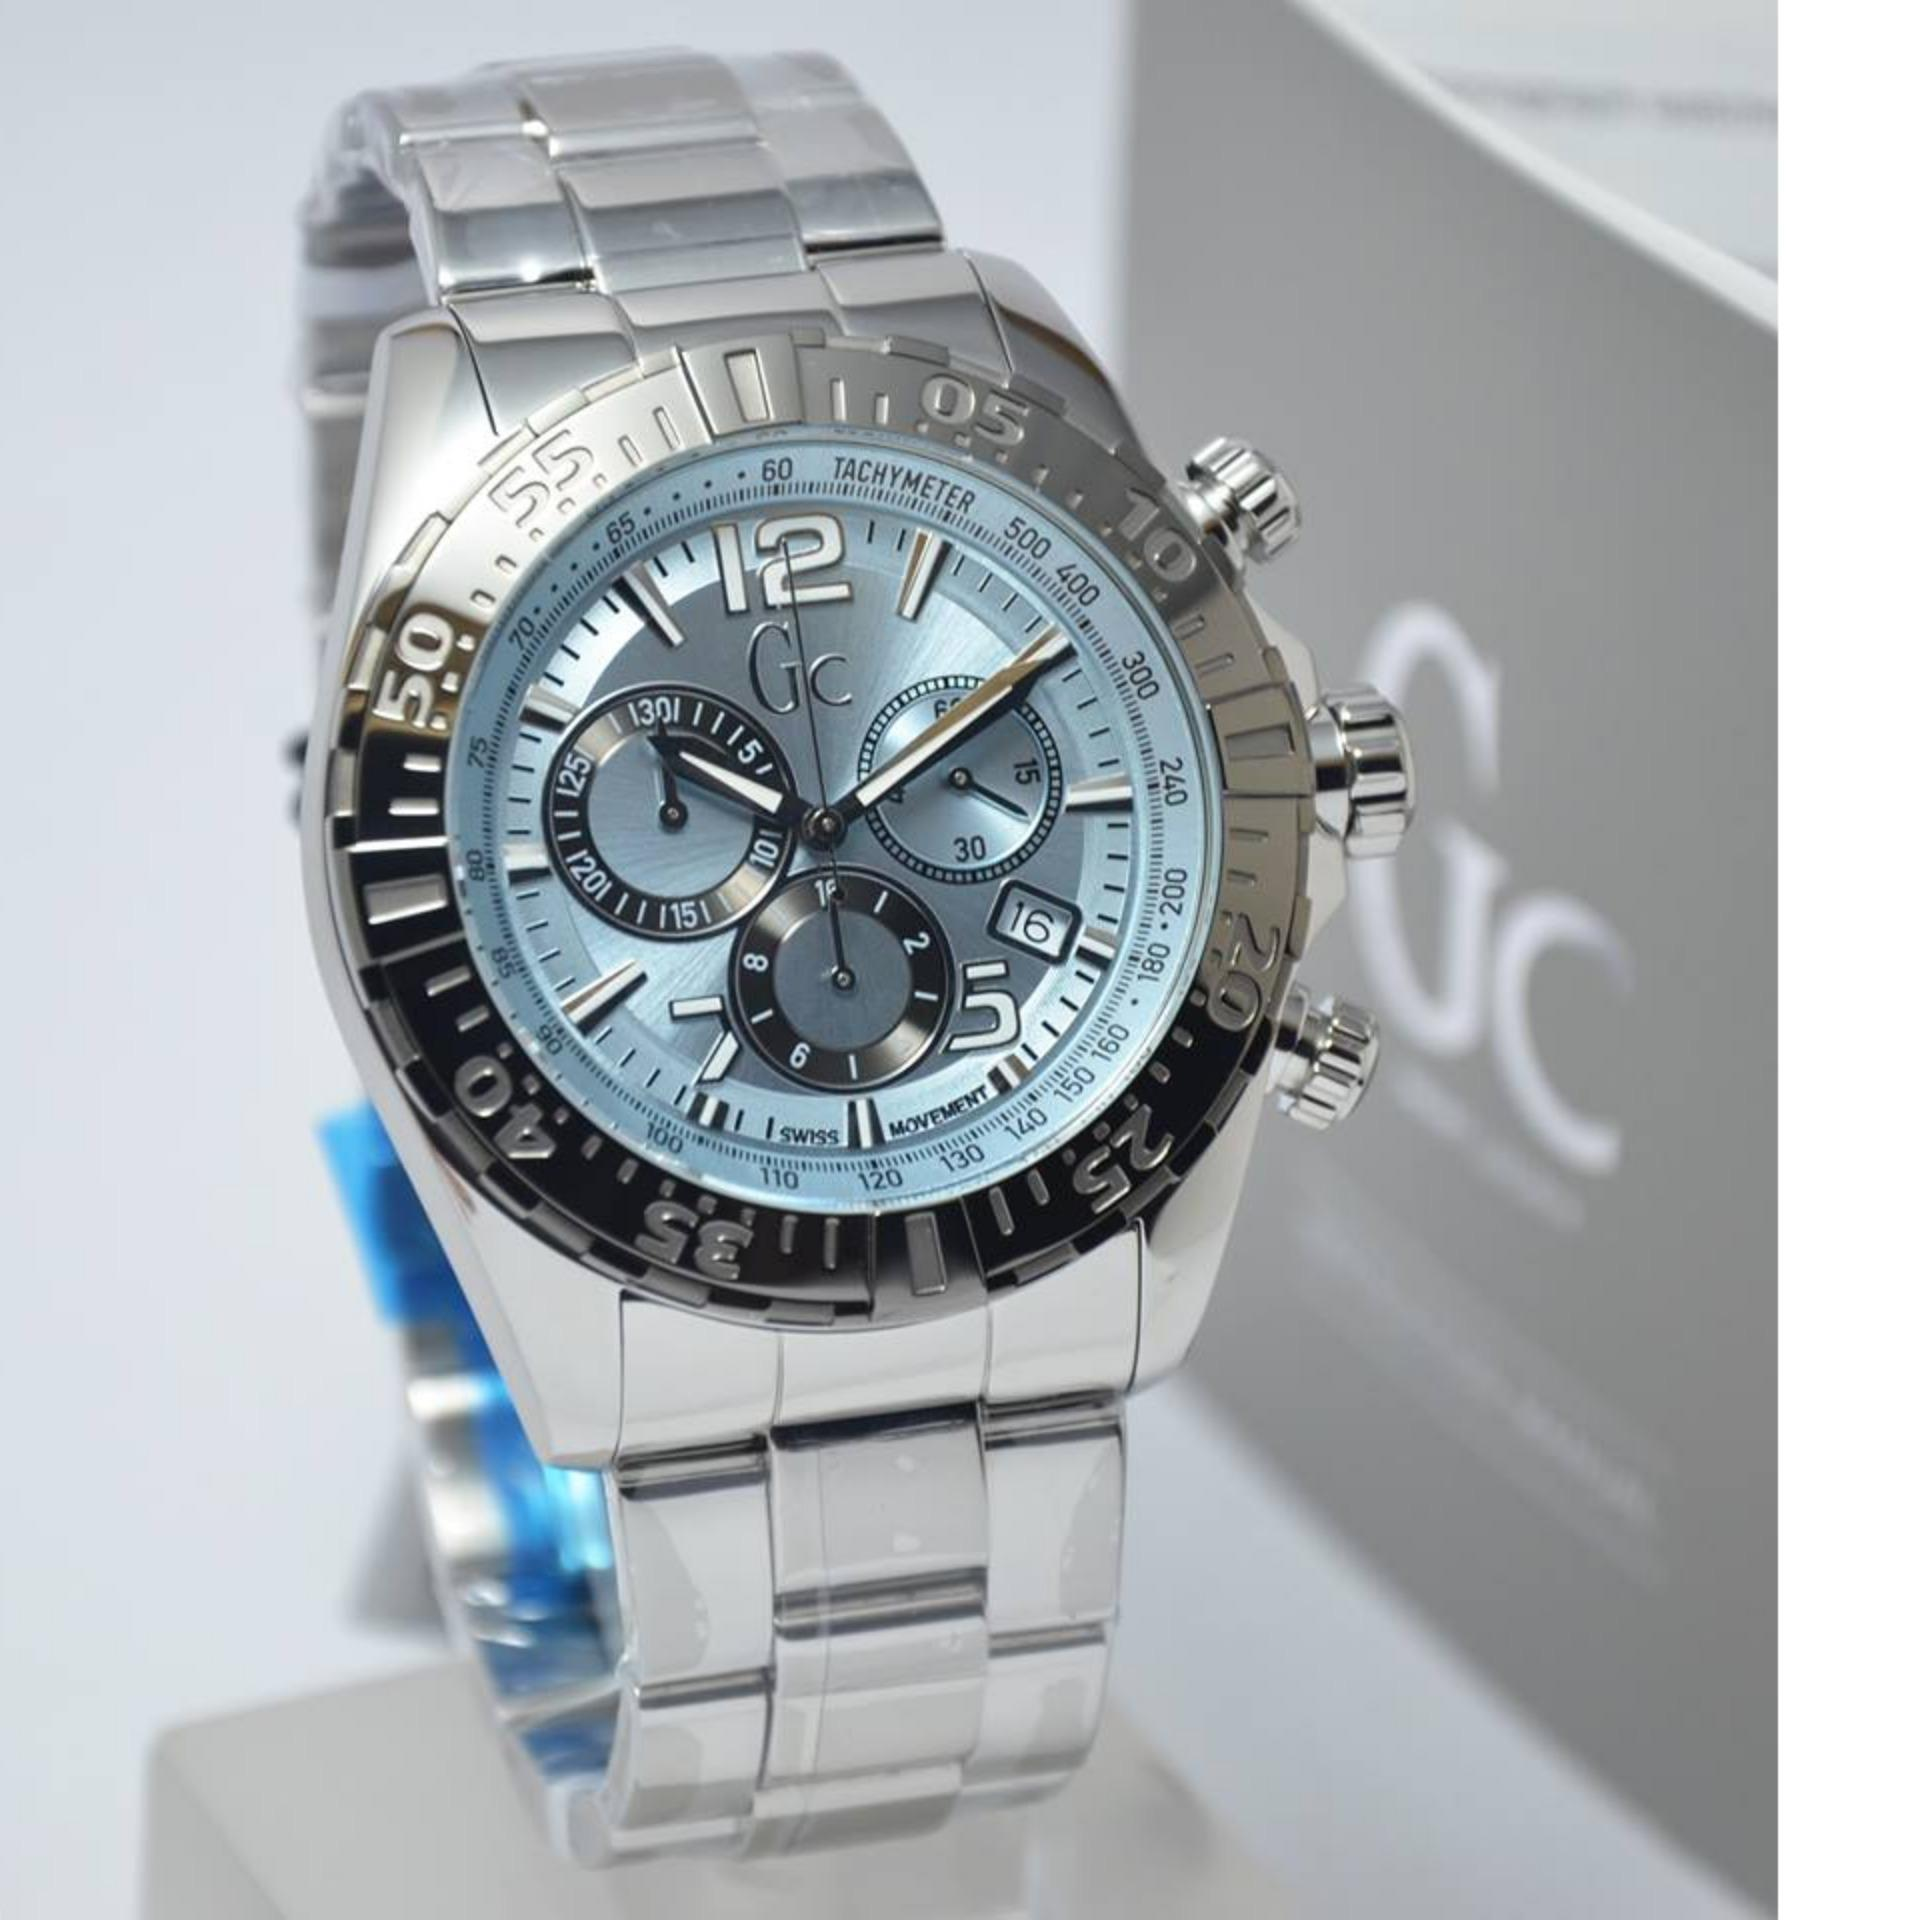 Guess Collection Gc Sportracer Y02005g7 Chronograph Jam Tangan Pria W0598g2 Velocity Stainless Stee